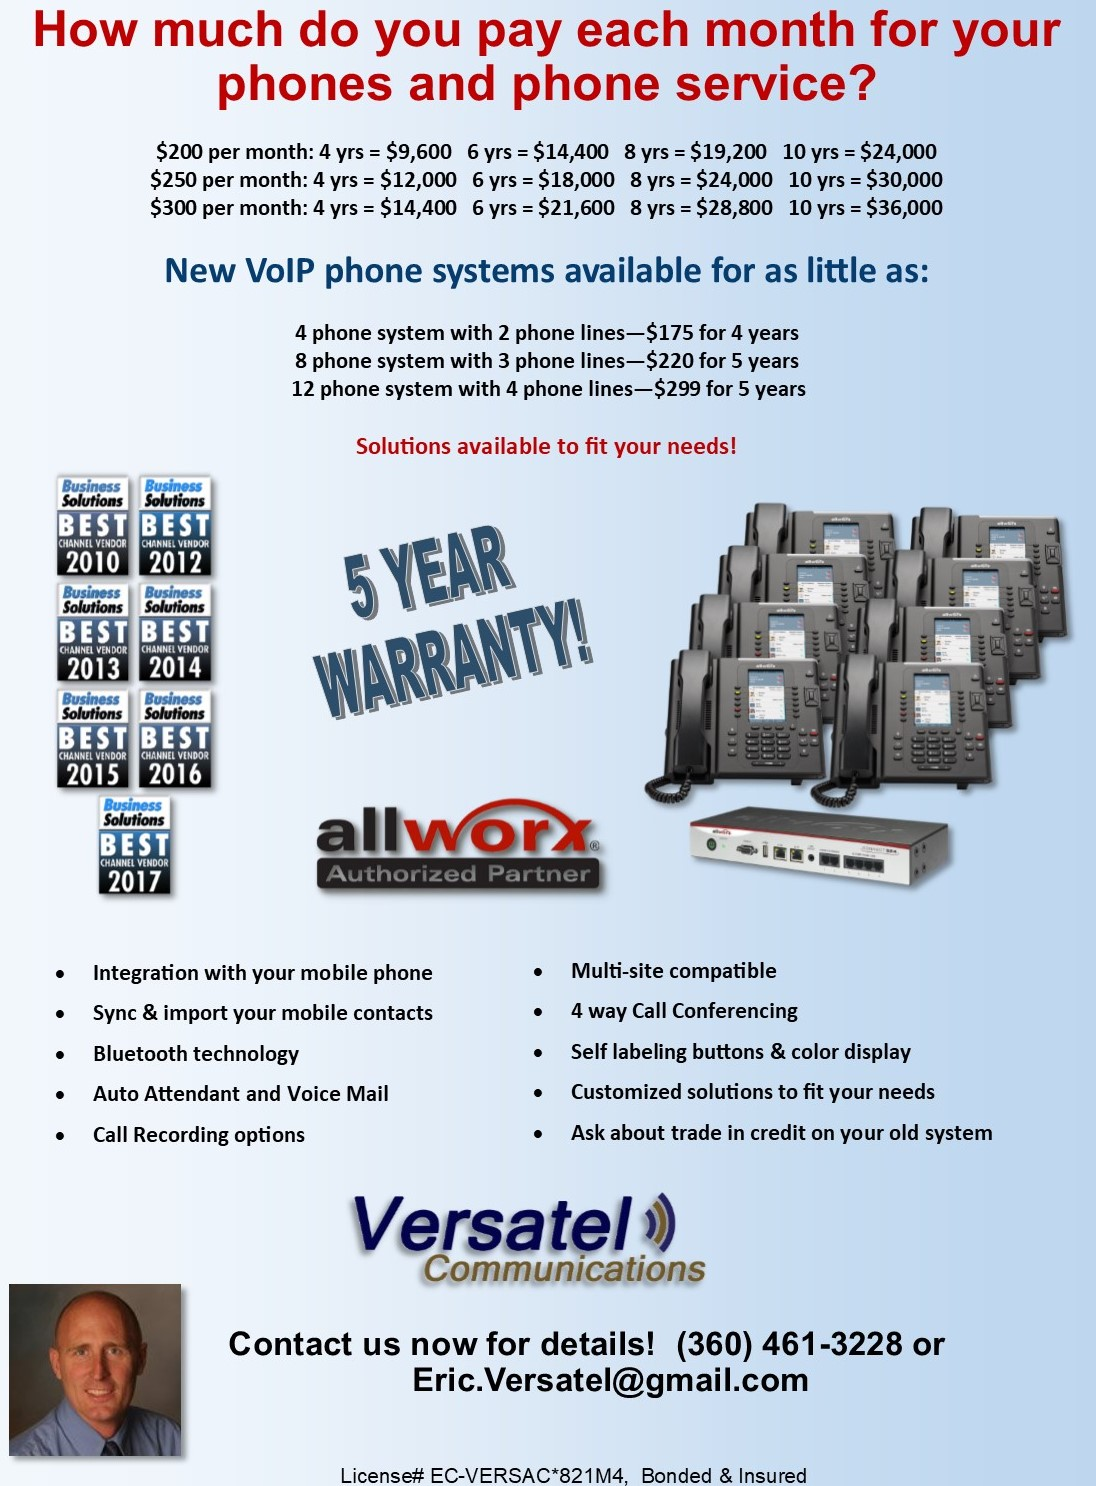 allworx-voip-phones.jpg